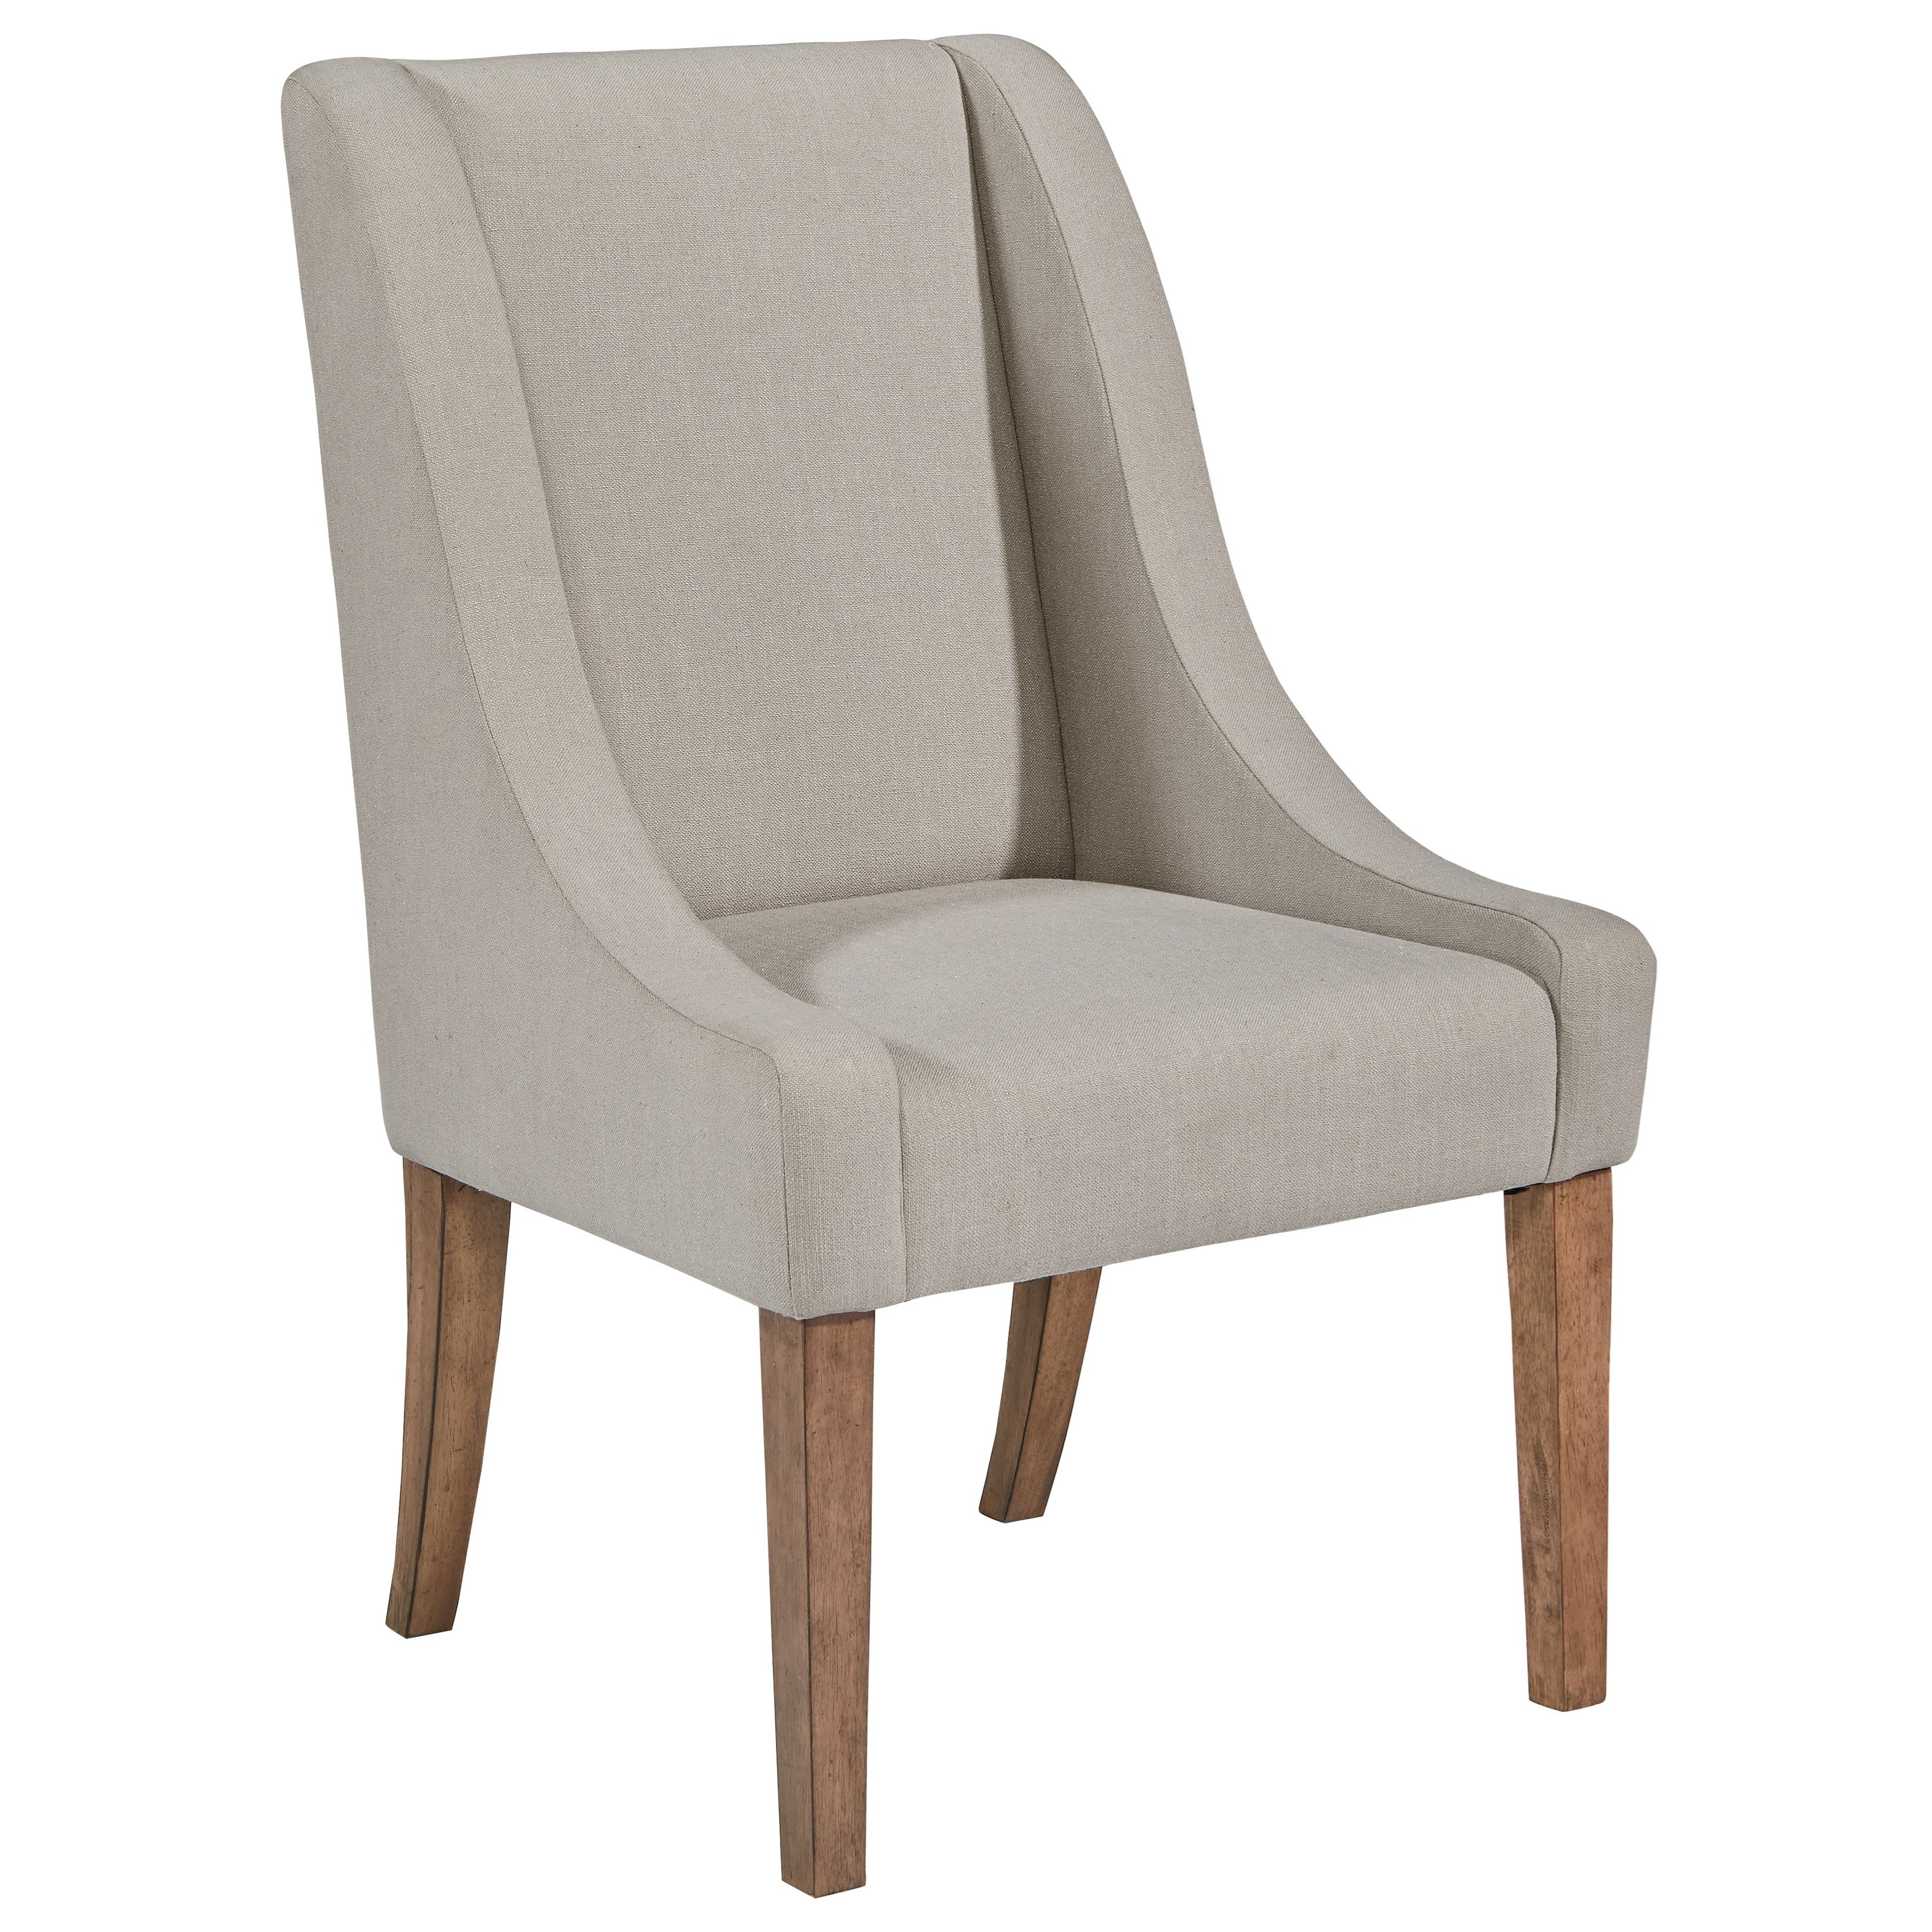 Magnolia Home by Joanna Gaines French Inspired Demi-Wing Upholstered Side Chair - Item Number: 3010307H